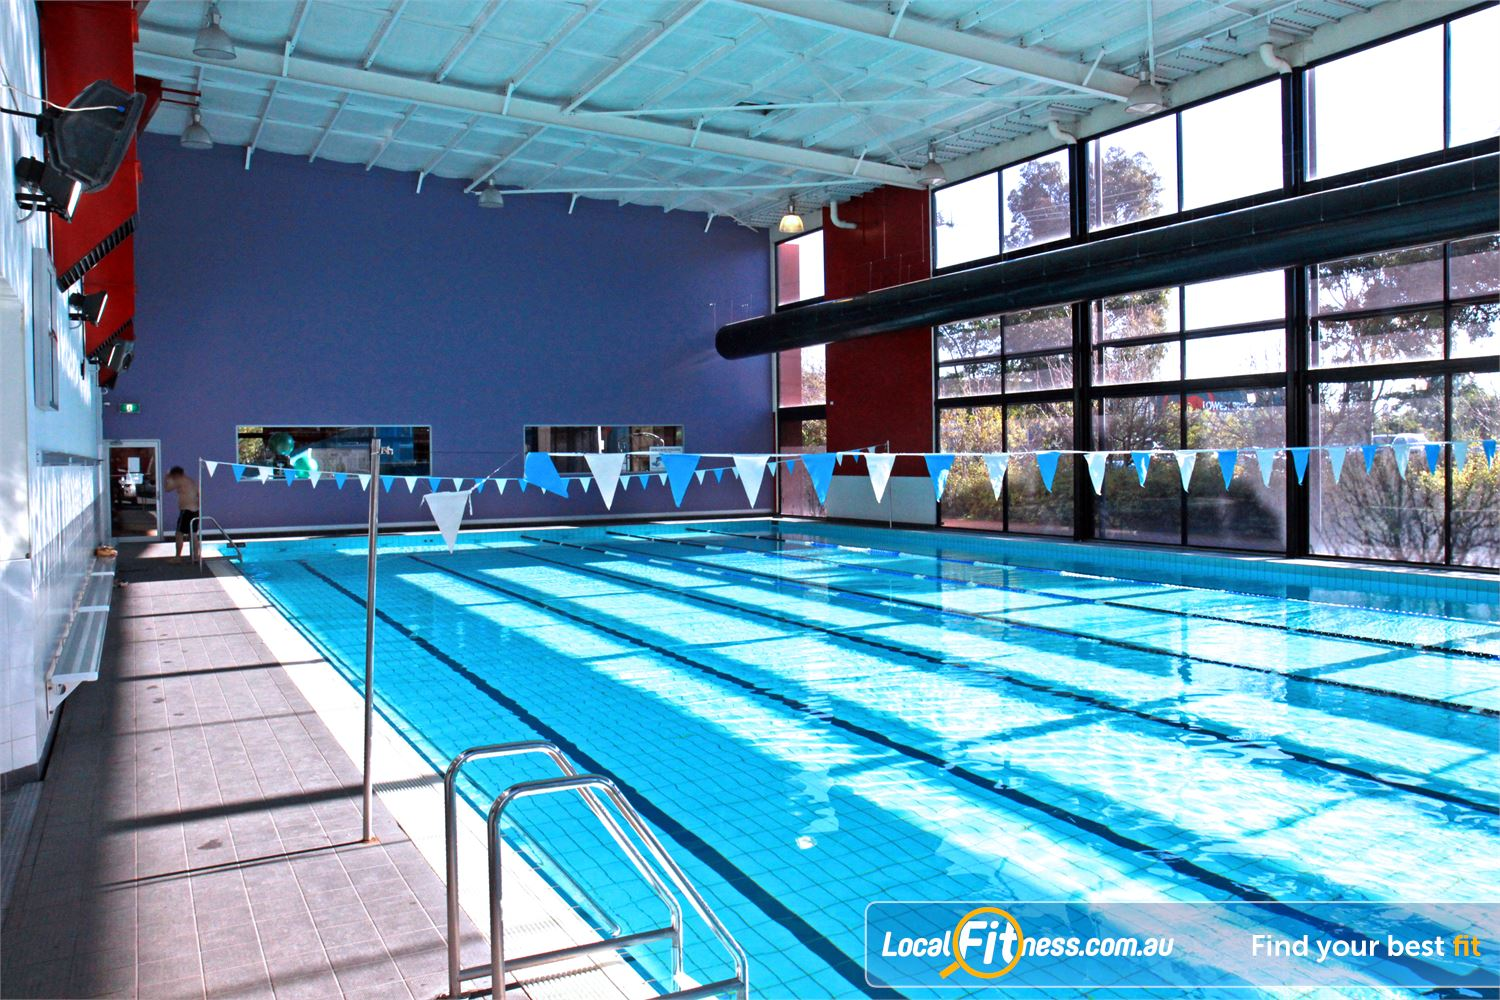 Goodlife Health Clubs Near Bentley Join in on our range of Cannington aquatic activities.